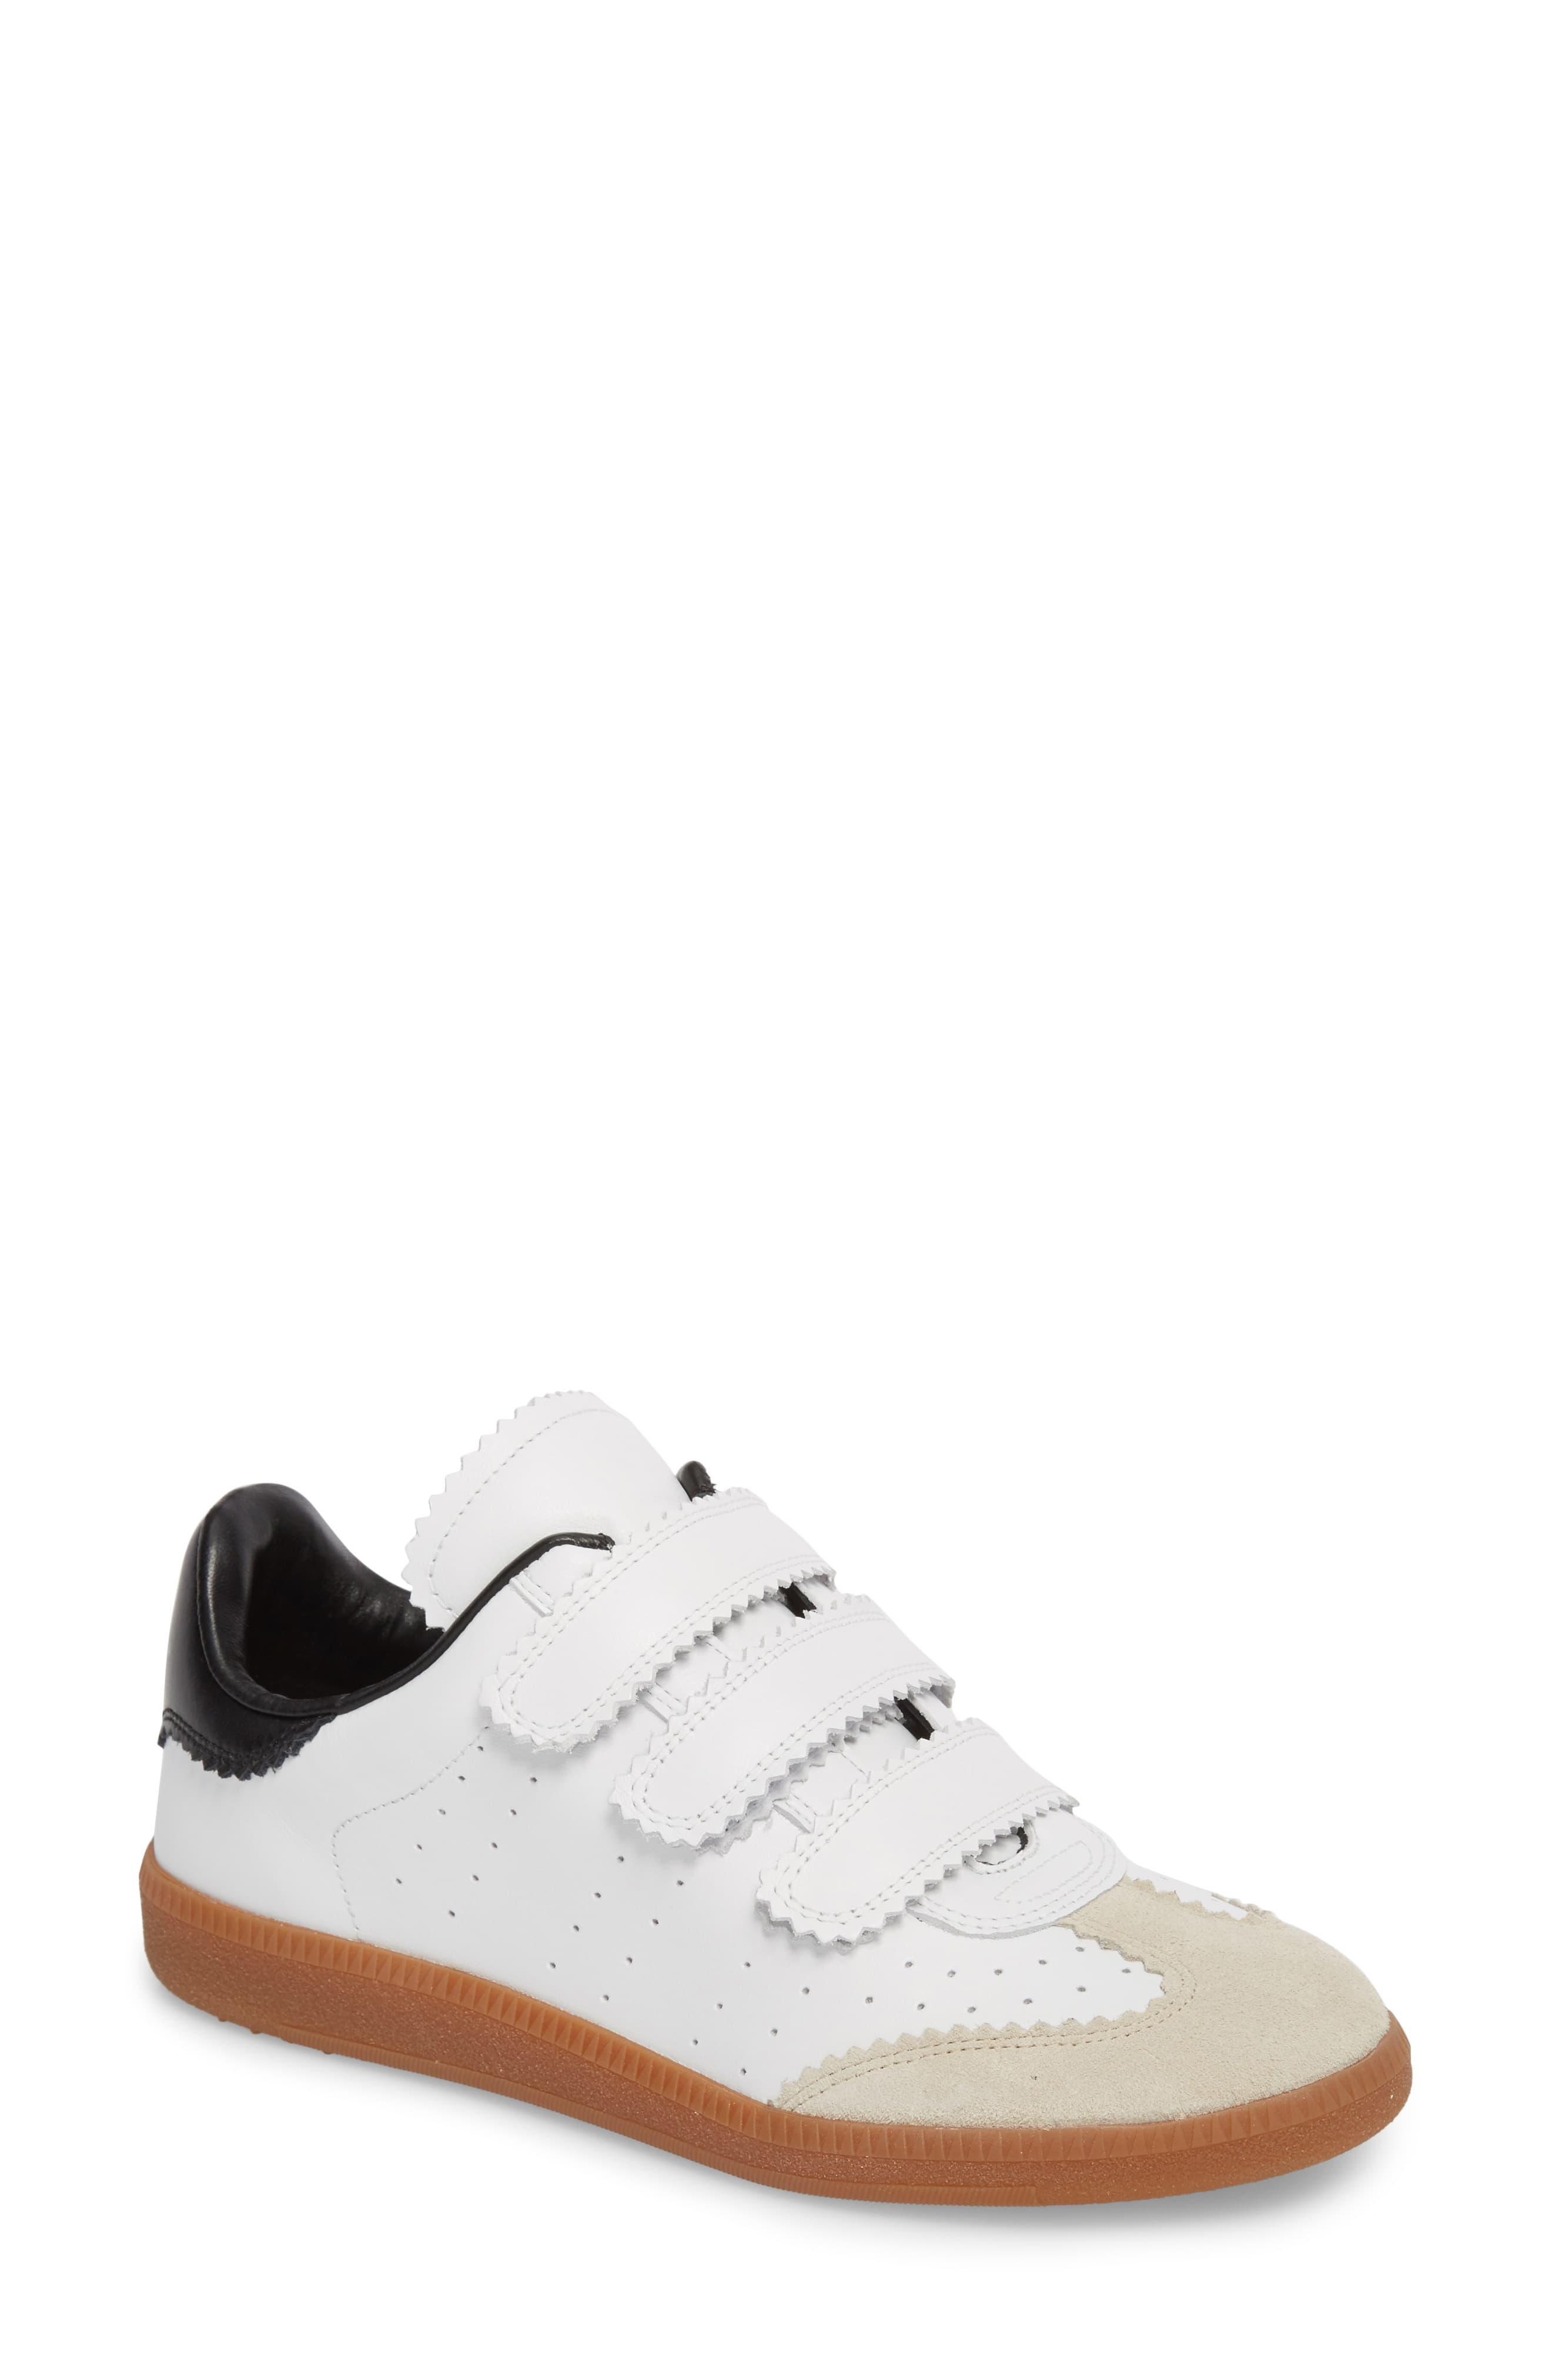 45e3adf55e Étoile Isabel Marant Isabel Marant Beth Low Top Sneaker in White - Lyst